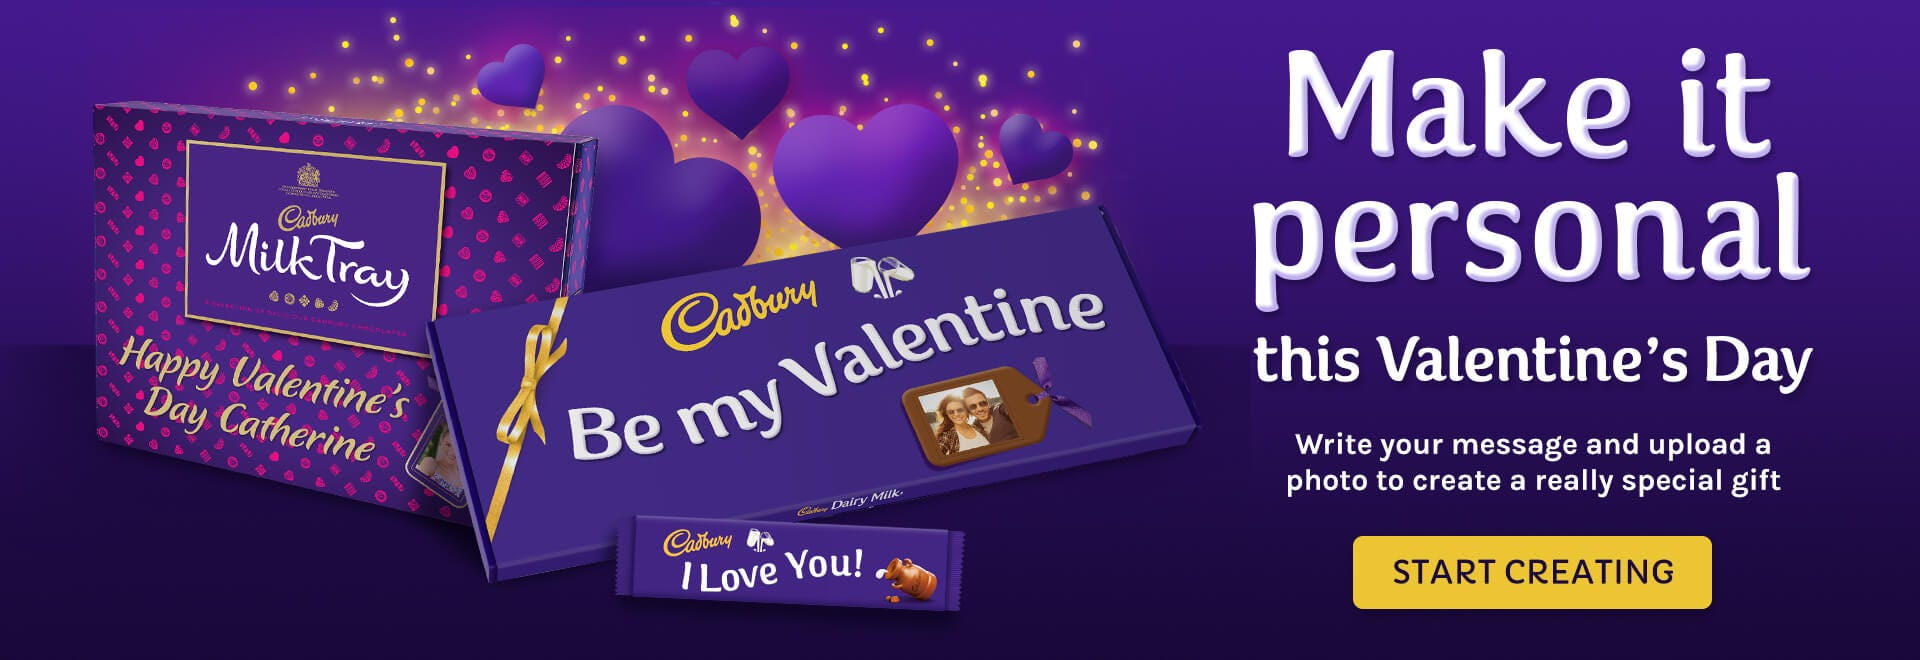 Cadbury personalised chocolate, create a unique gift for Valentine's Day